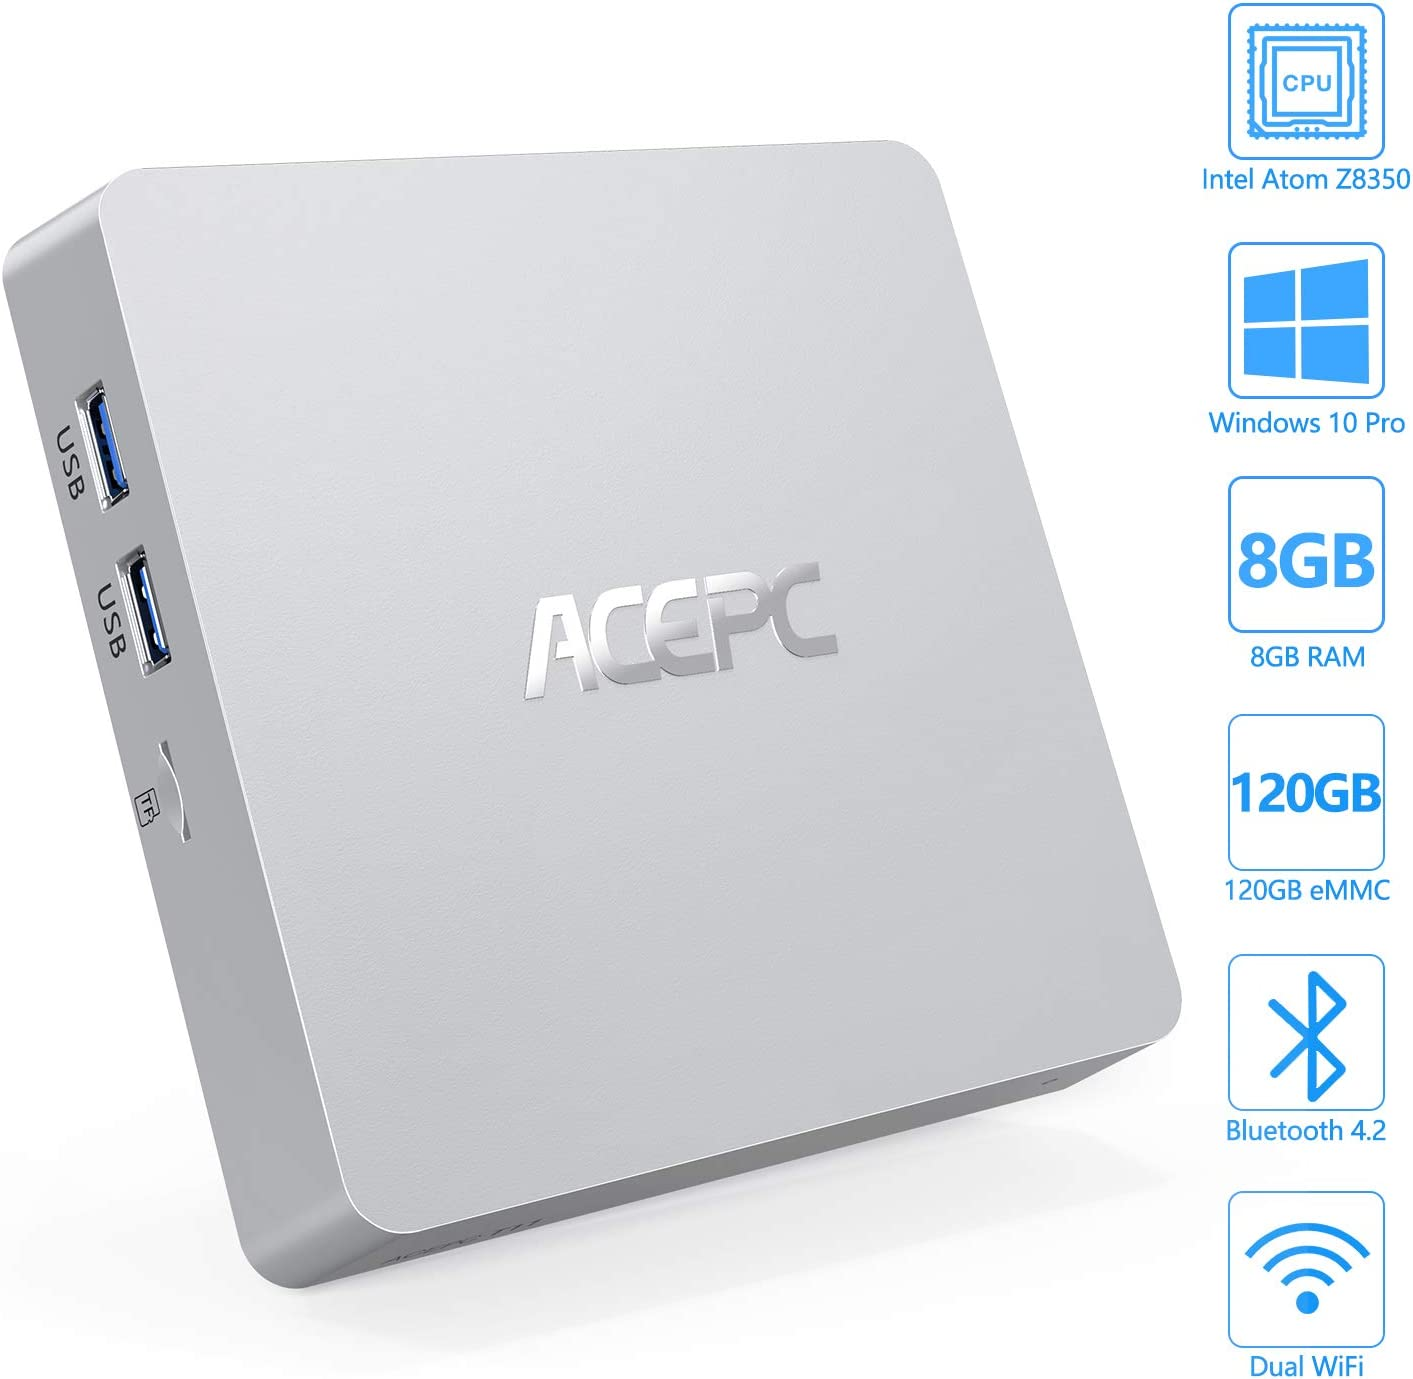 Mini PC, ACEPC Windows 10 Pro Fanless Mini Computer Intel Atom Z8350 8GB DDR3/120GB eMMC Desktop Computer Support 4K HD, HDMI+VGA Output, 2.4G/5G WiFi, Bluetooth, Gigabit Ethernet